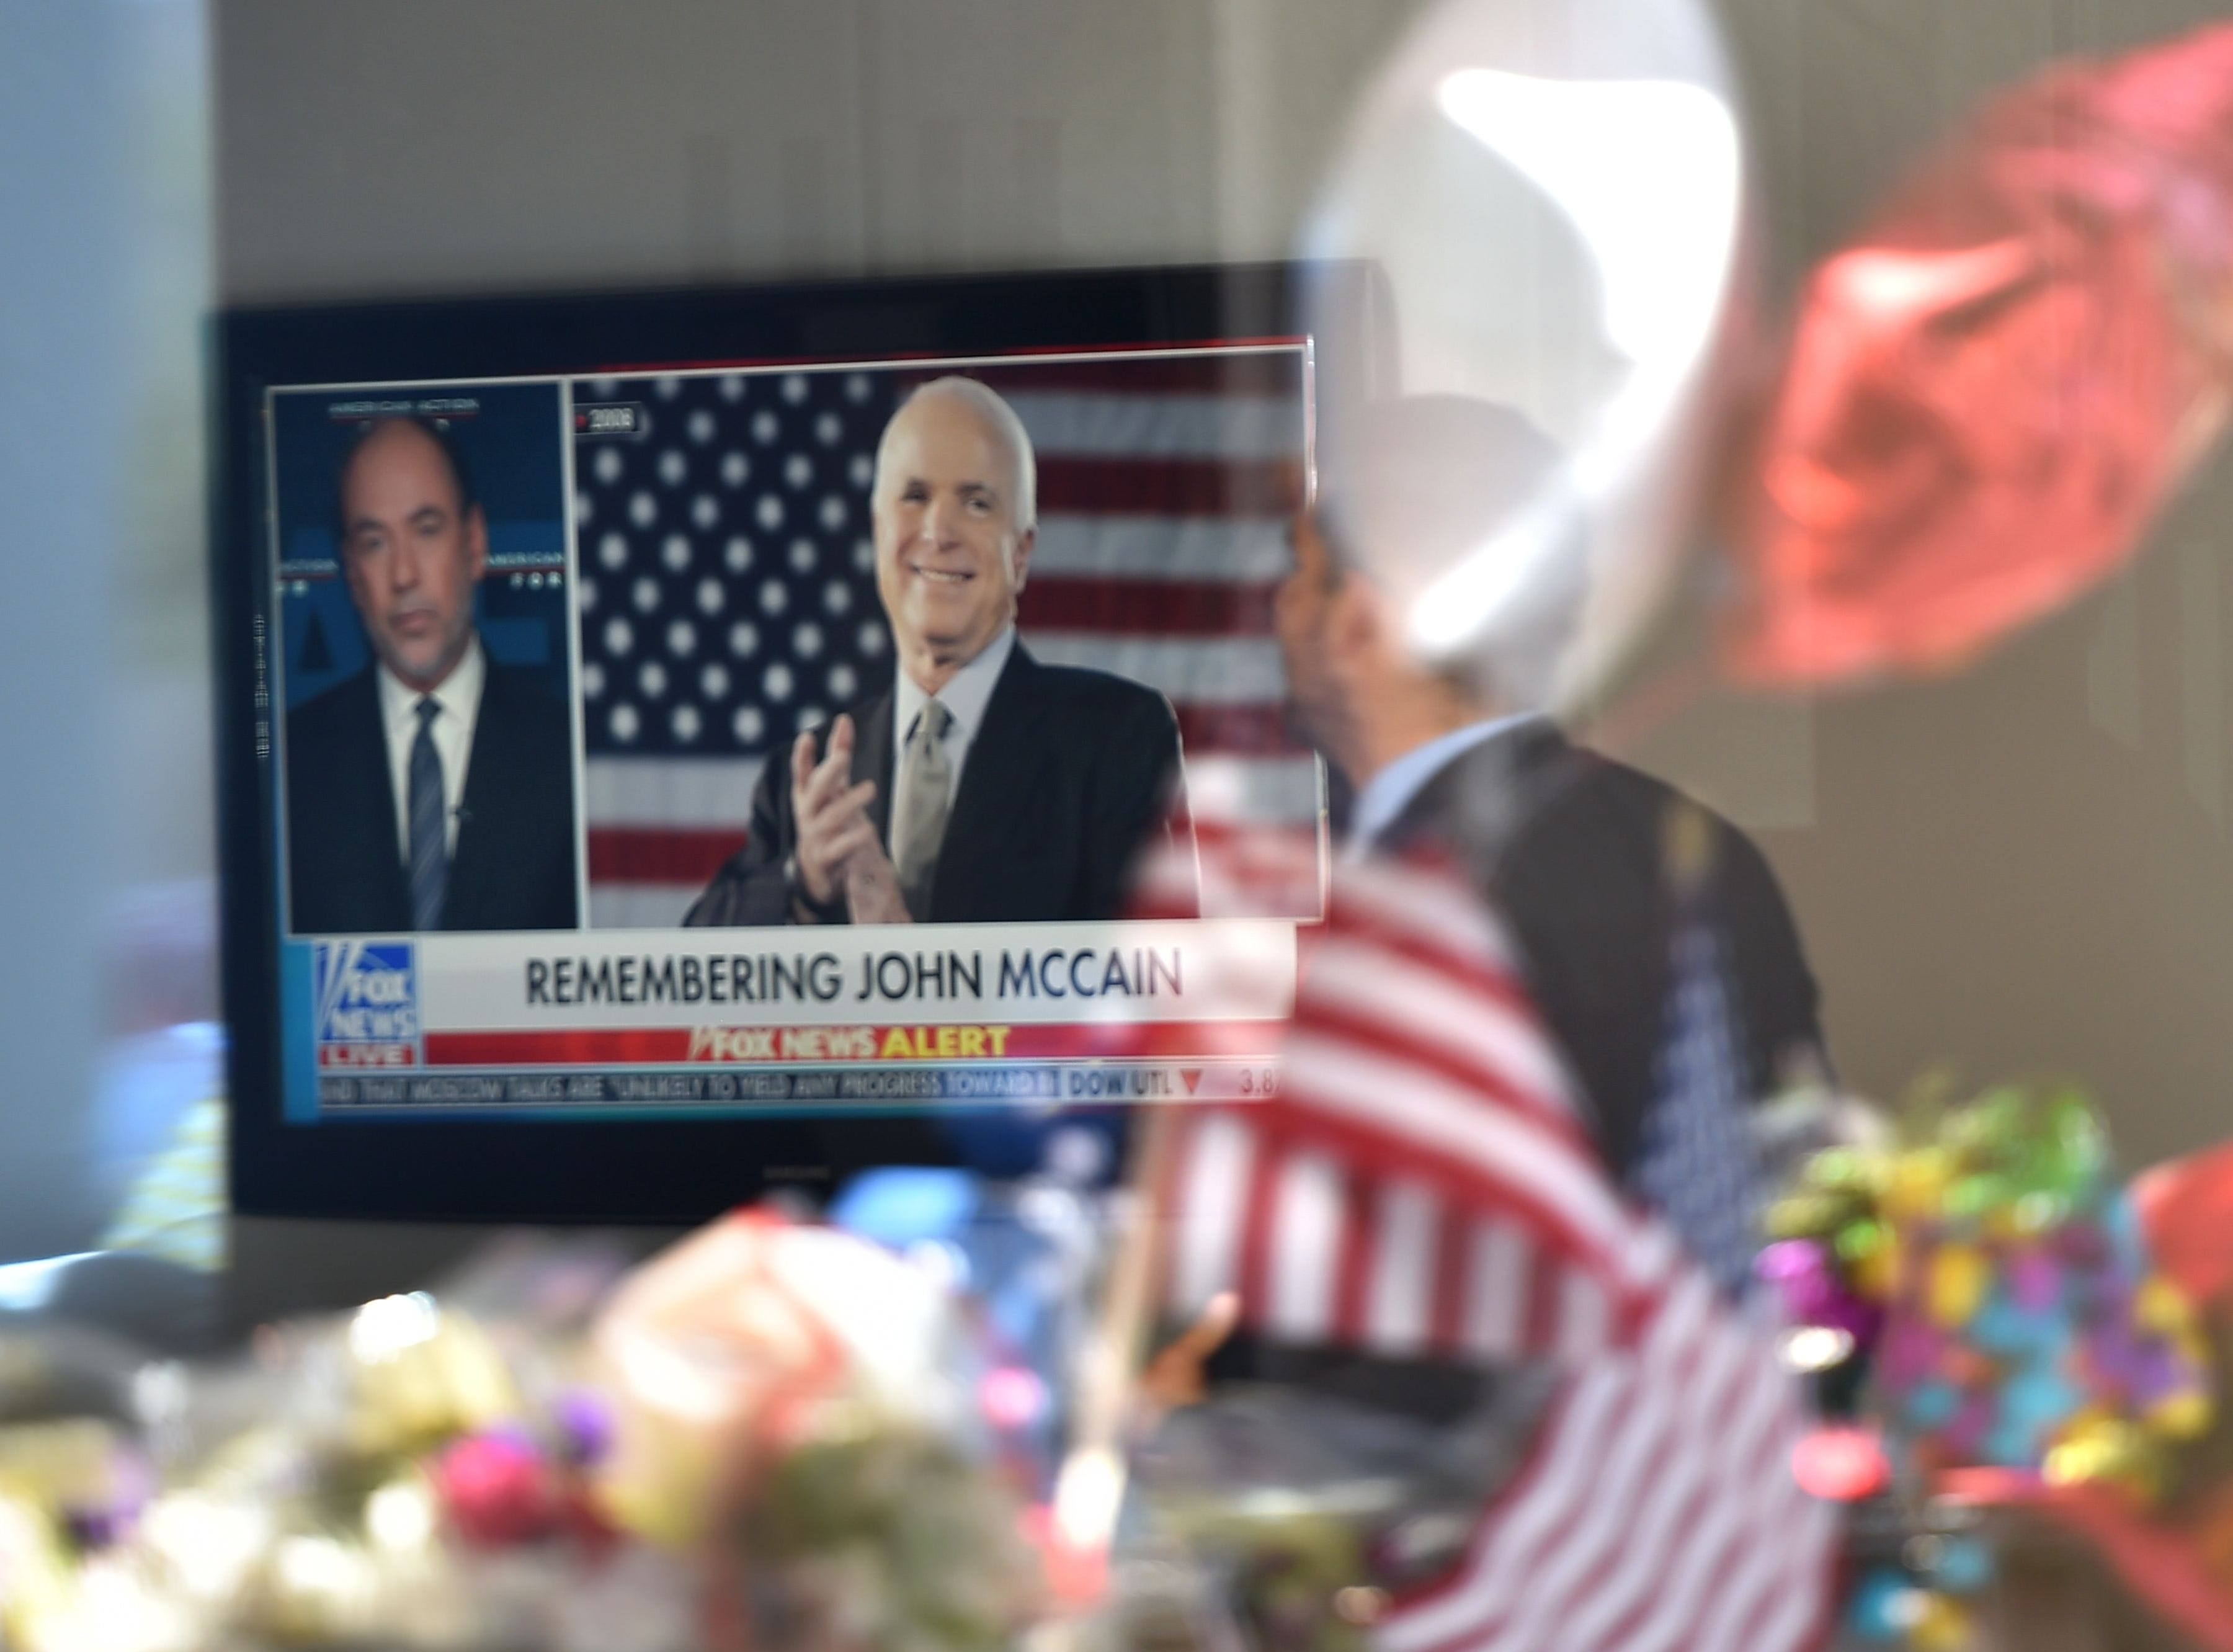 A man in the lobby of Senator John McCain's former office building watches a Fox News report as flowers and balloons from a makeshift memorial located outside the building are reflected in the building's glass window, Aug. 27, 2018 in Phoenix, Ariz.